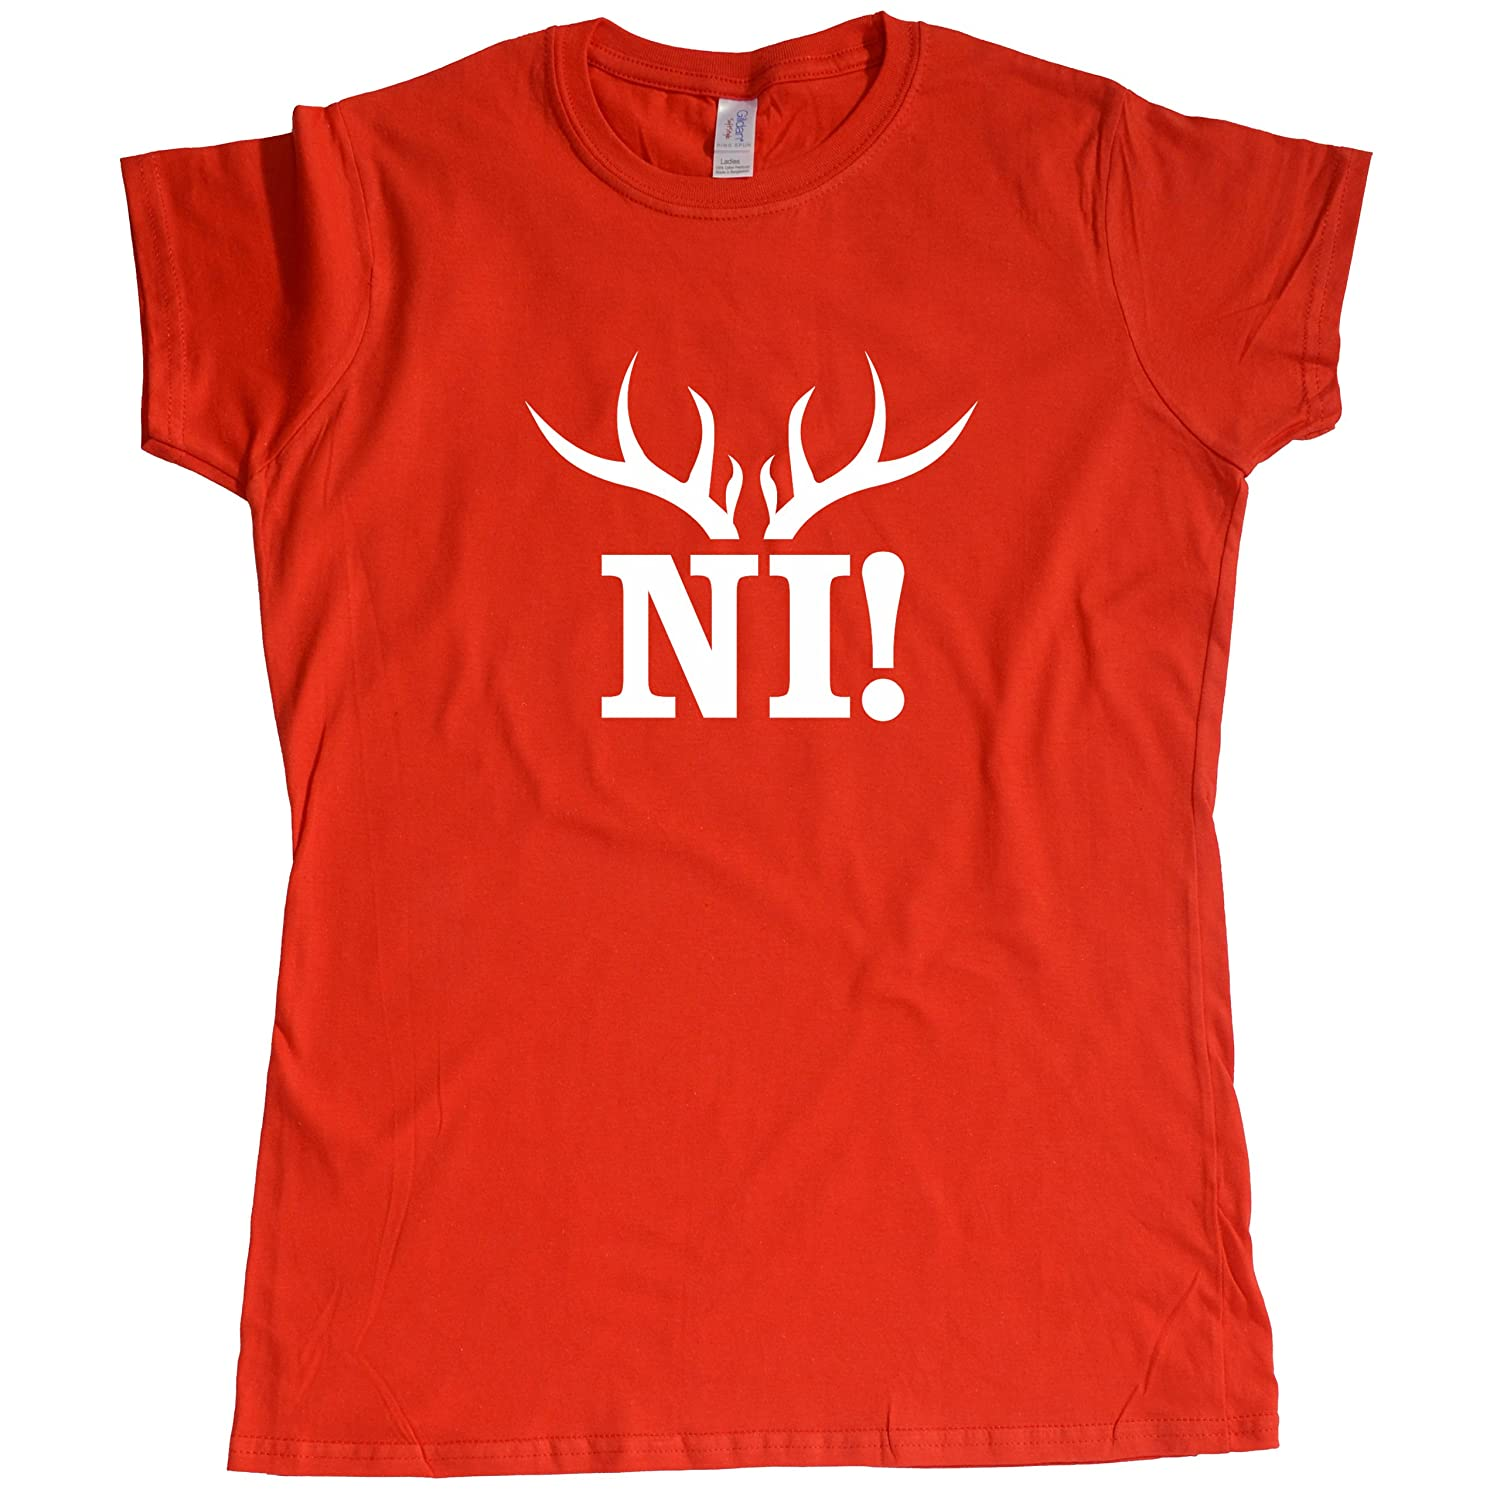 Stooble Womens's Knights Who Say Ni! T-Shirt Stooble - 1ClickPrint